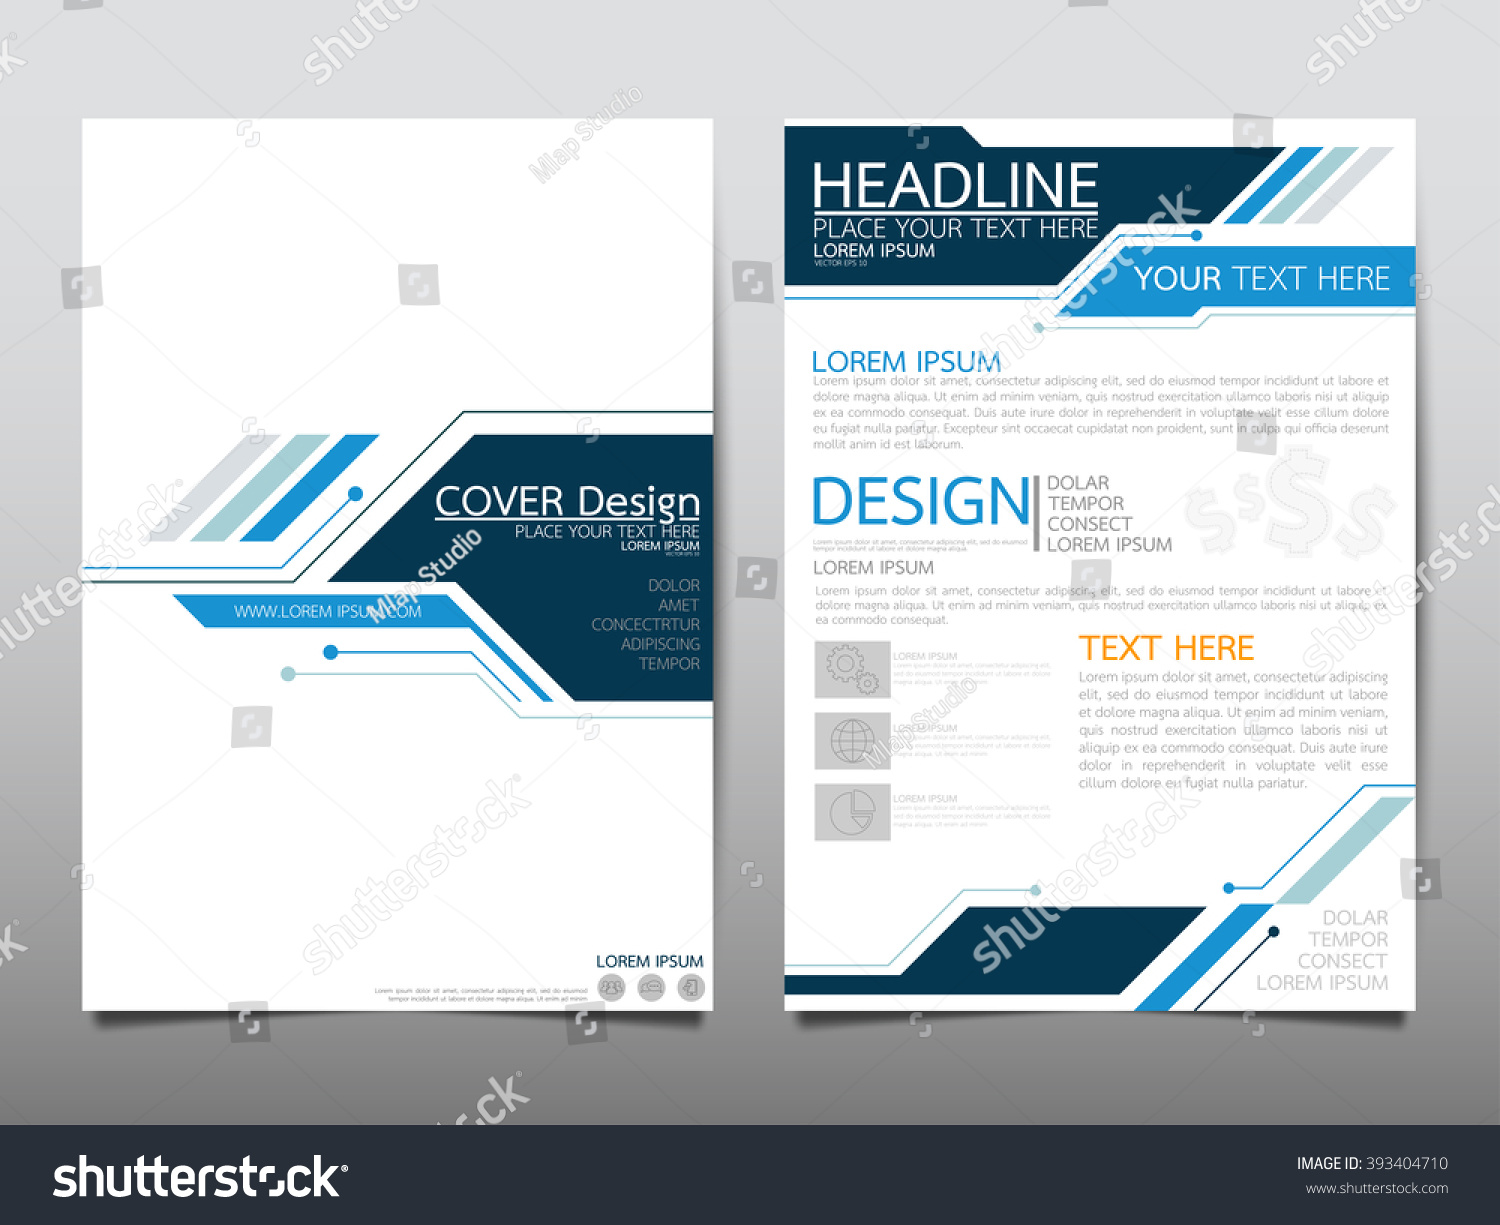 free annual report templates – Free Annual Report Templates